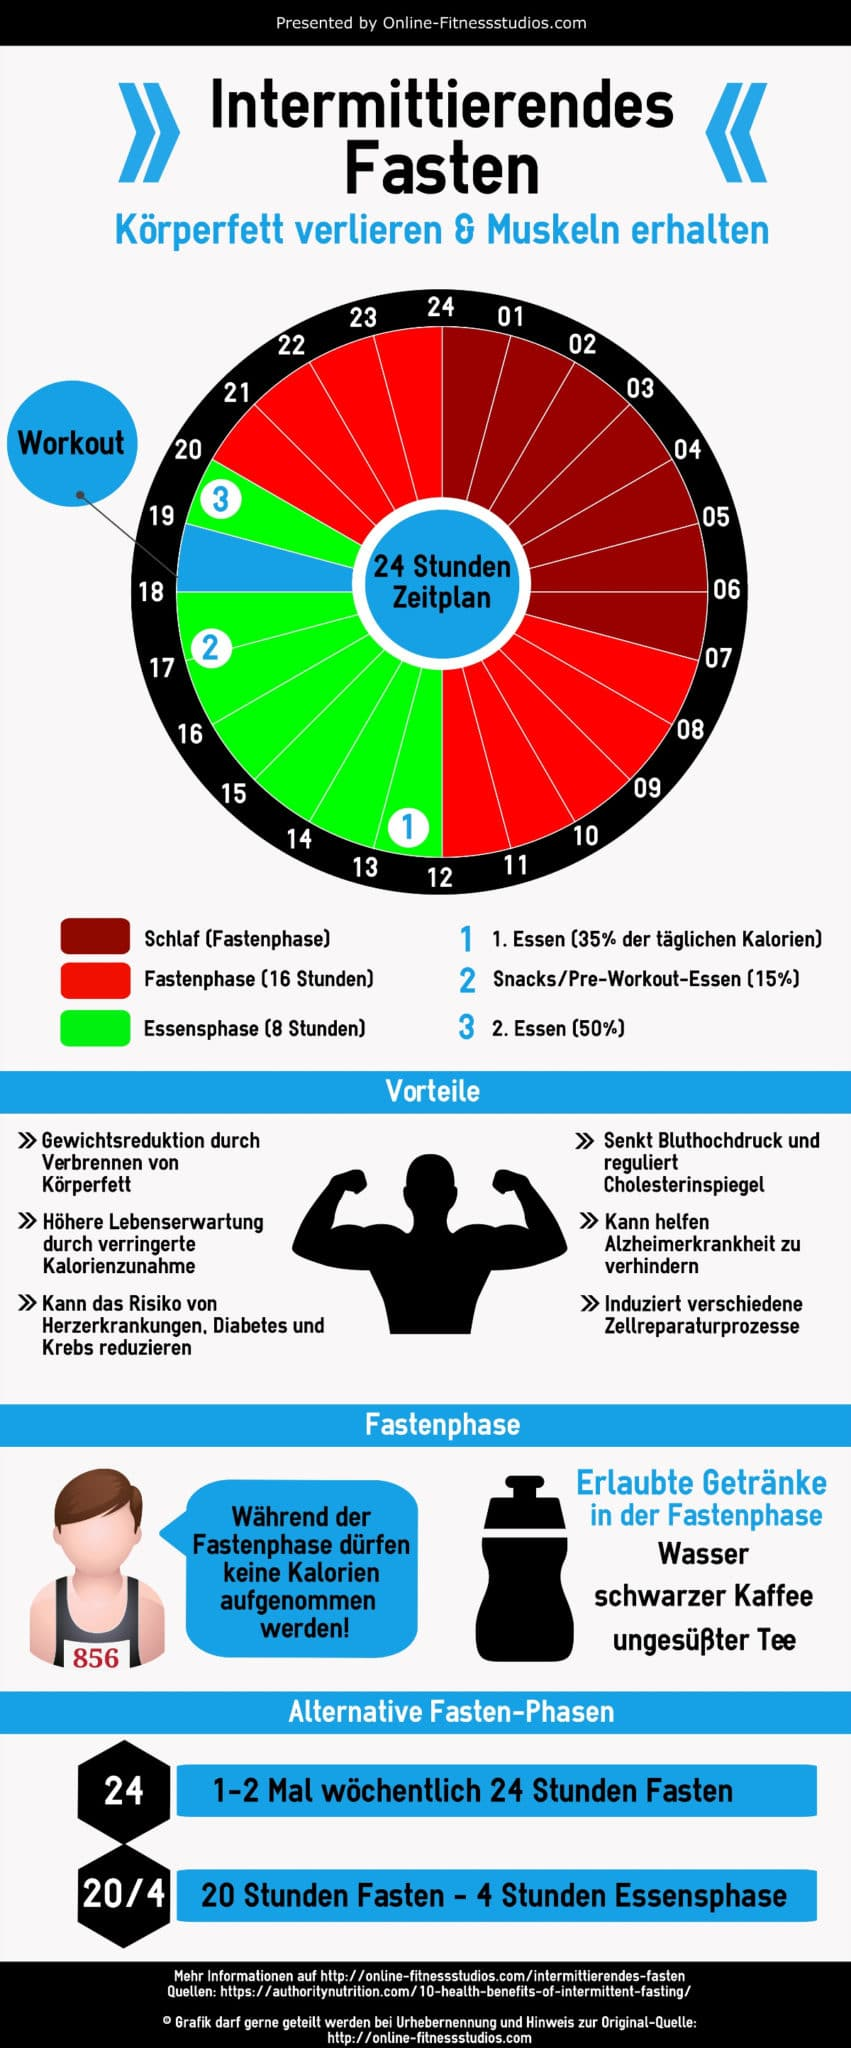 Intermittierendes Fasten - der ultimative Guide